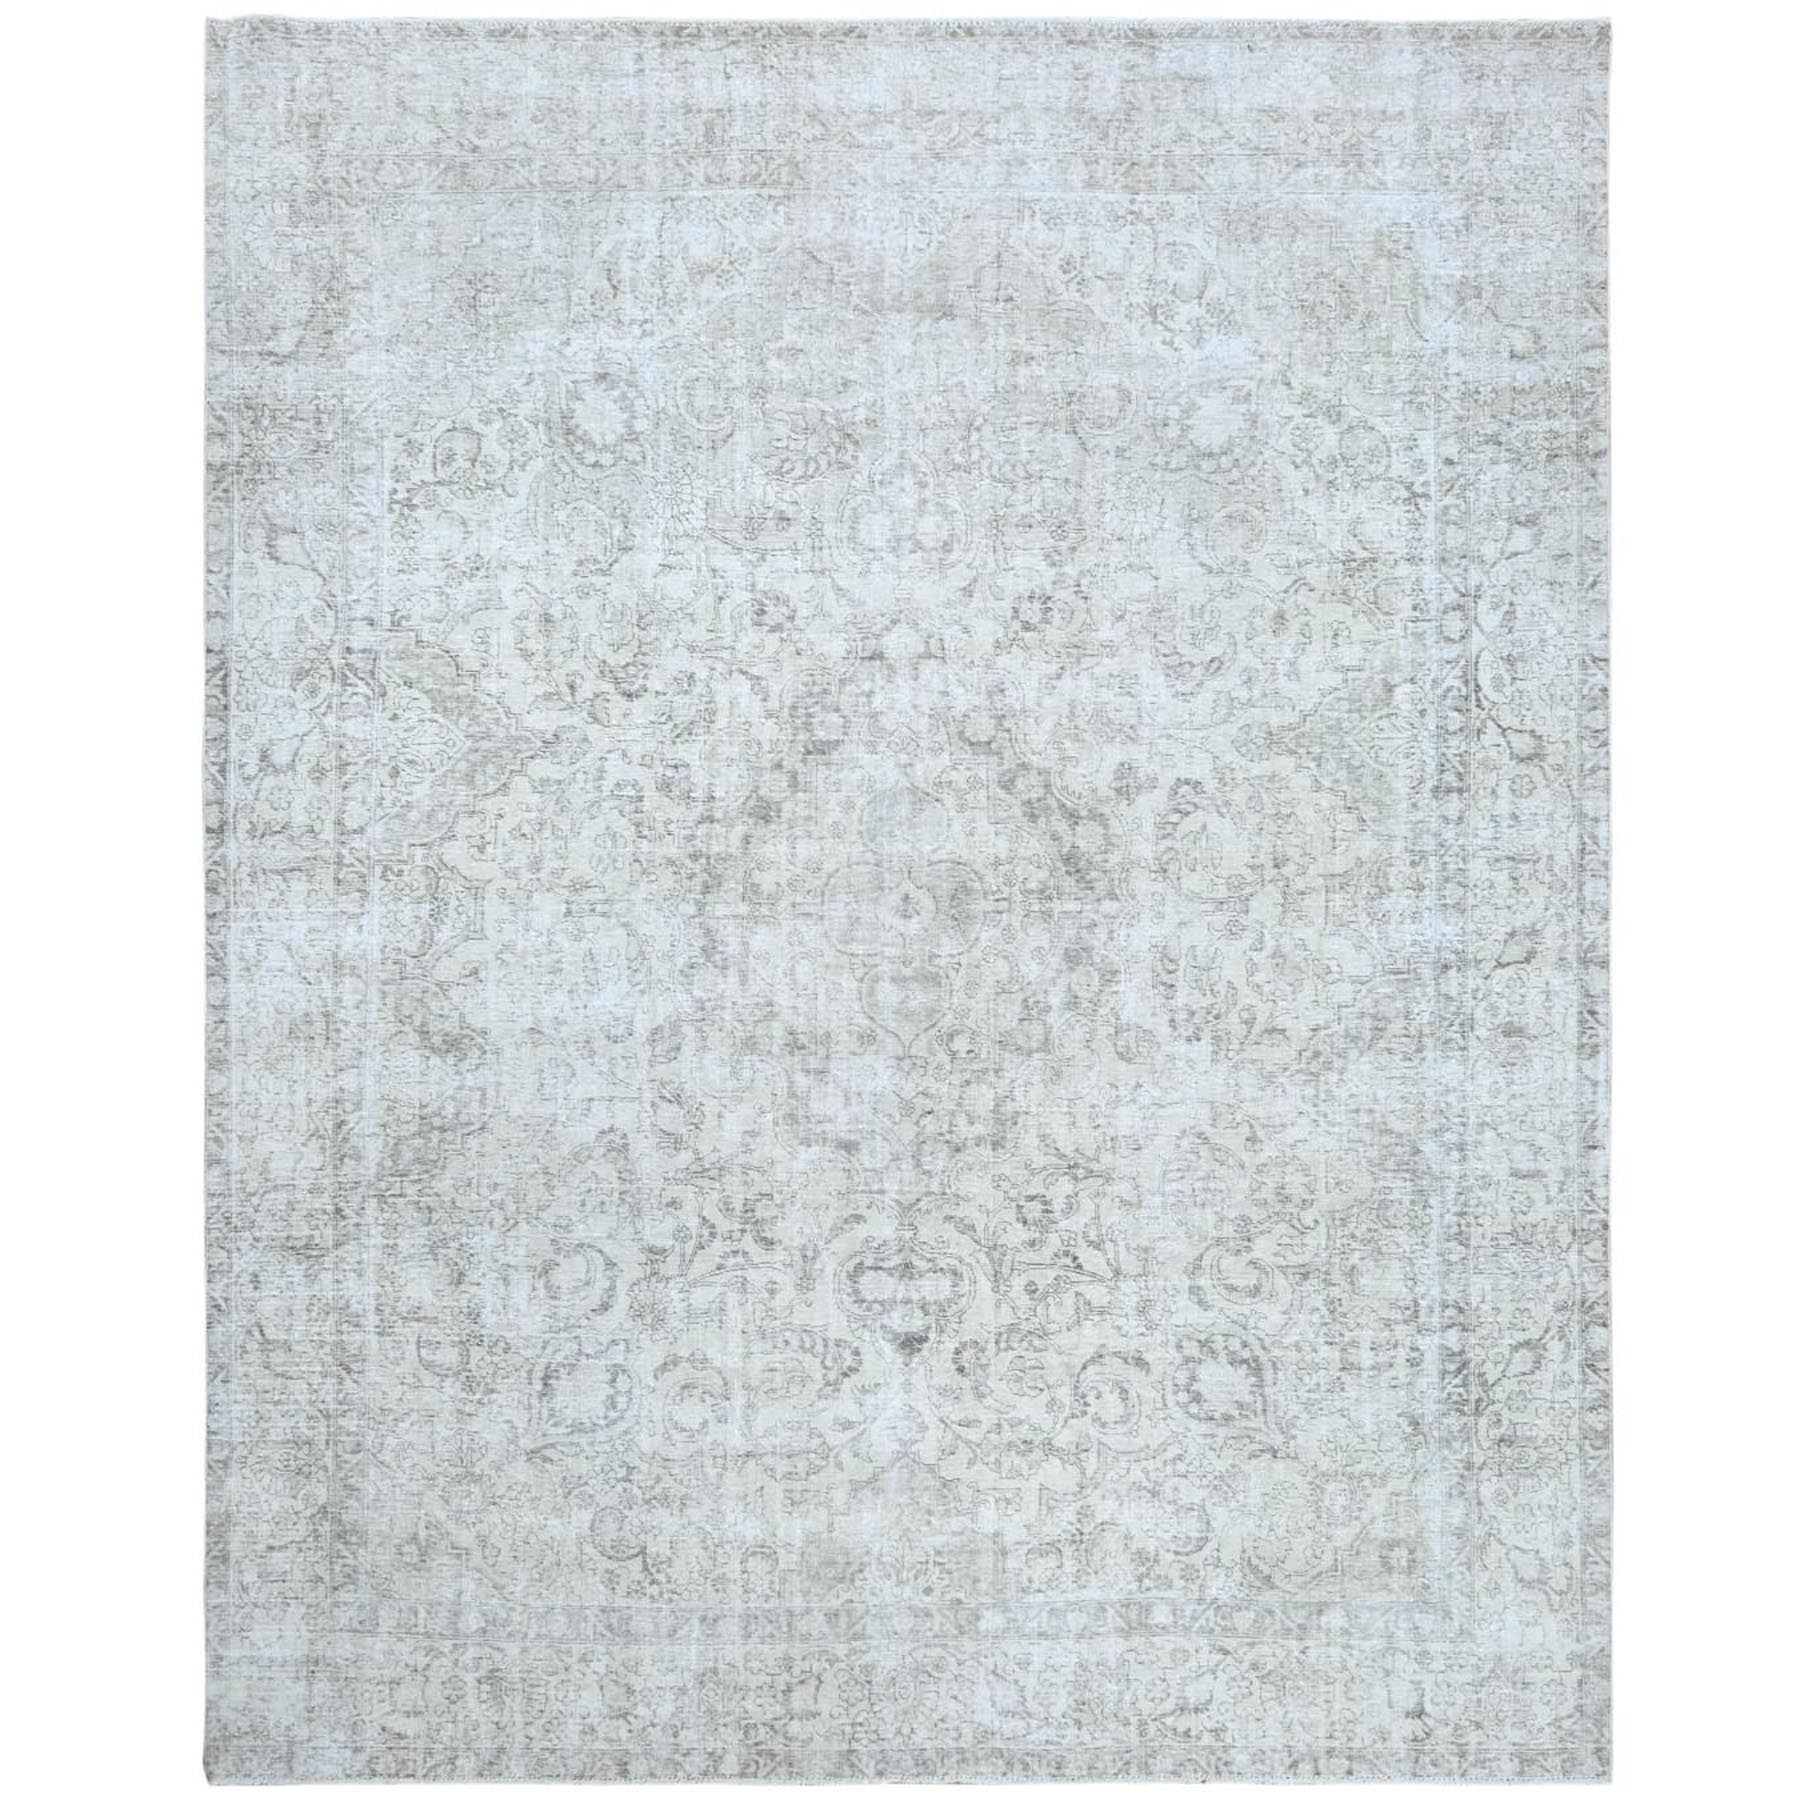 "10'4""x12'9"" Washed Out Ivory Semi Antique Persian Tabriz Distressed Look Clean Hand Knotted Velvety Wool Oriental Rug"